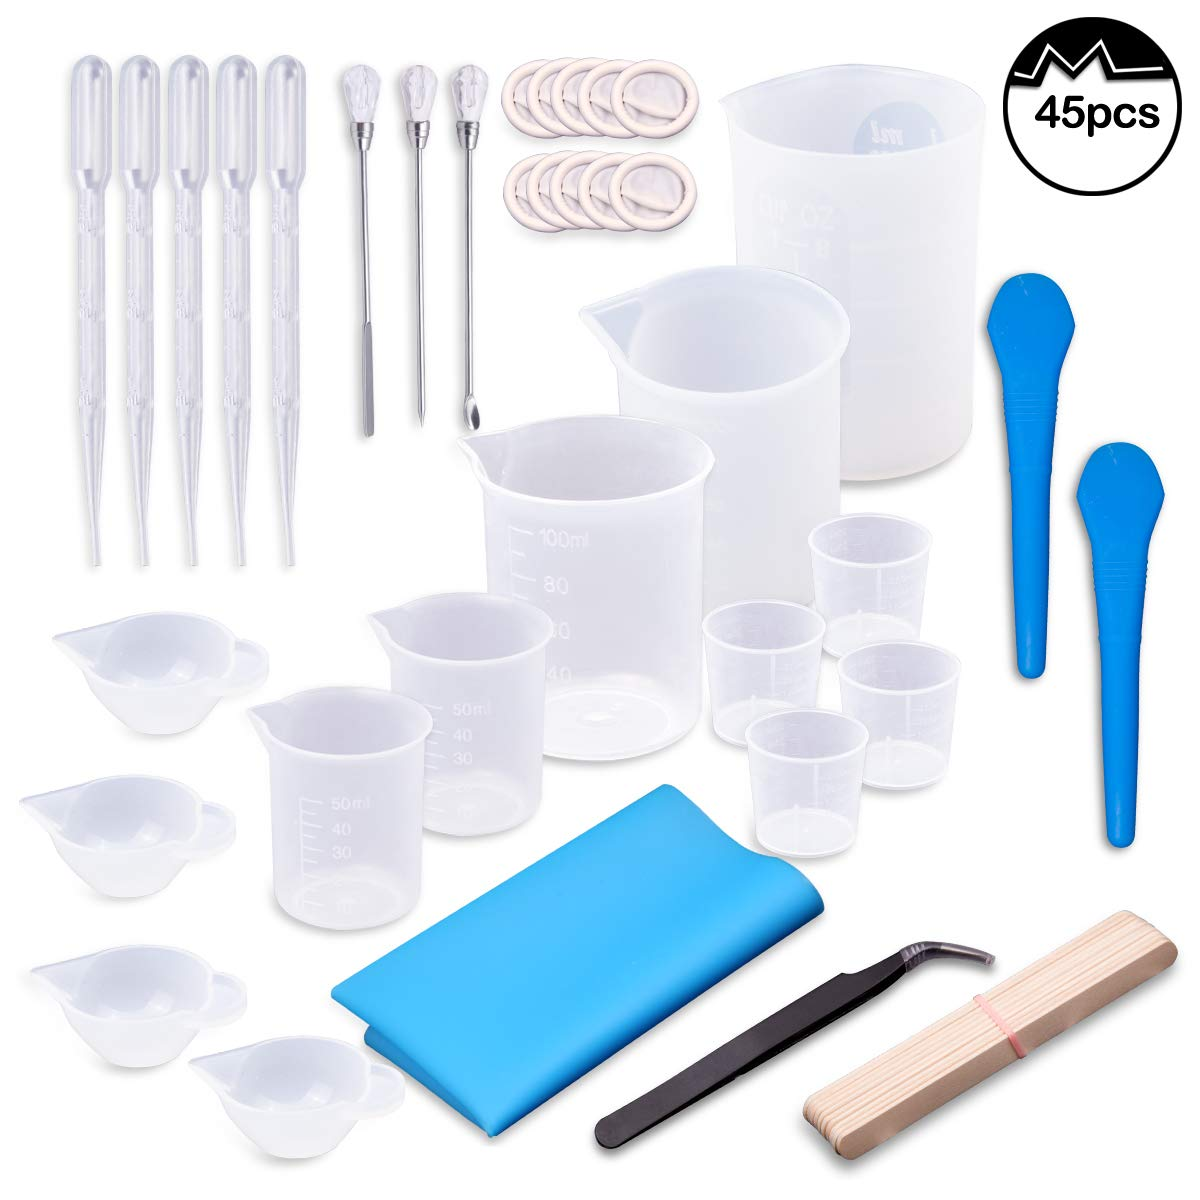 Moi Doi 45PCS Resin Mixing Cups Tools Kit, Graduated Plastic Silicone Measuring Cups, with Pipettes Mixing Stir Sticks Finger Cots Tweezer Silicone Mat for DIY Resin Casting Painting Jewelry Making by Moi Doi